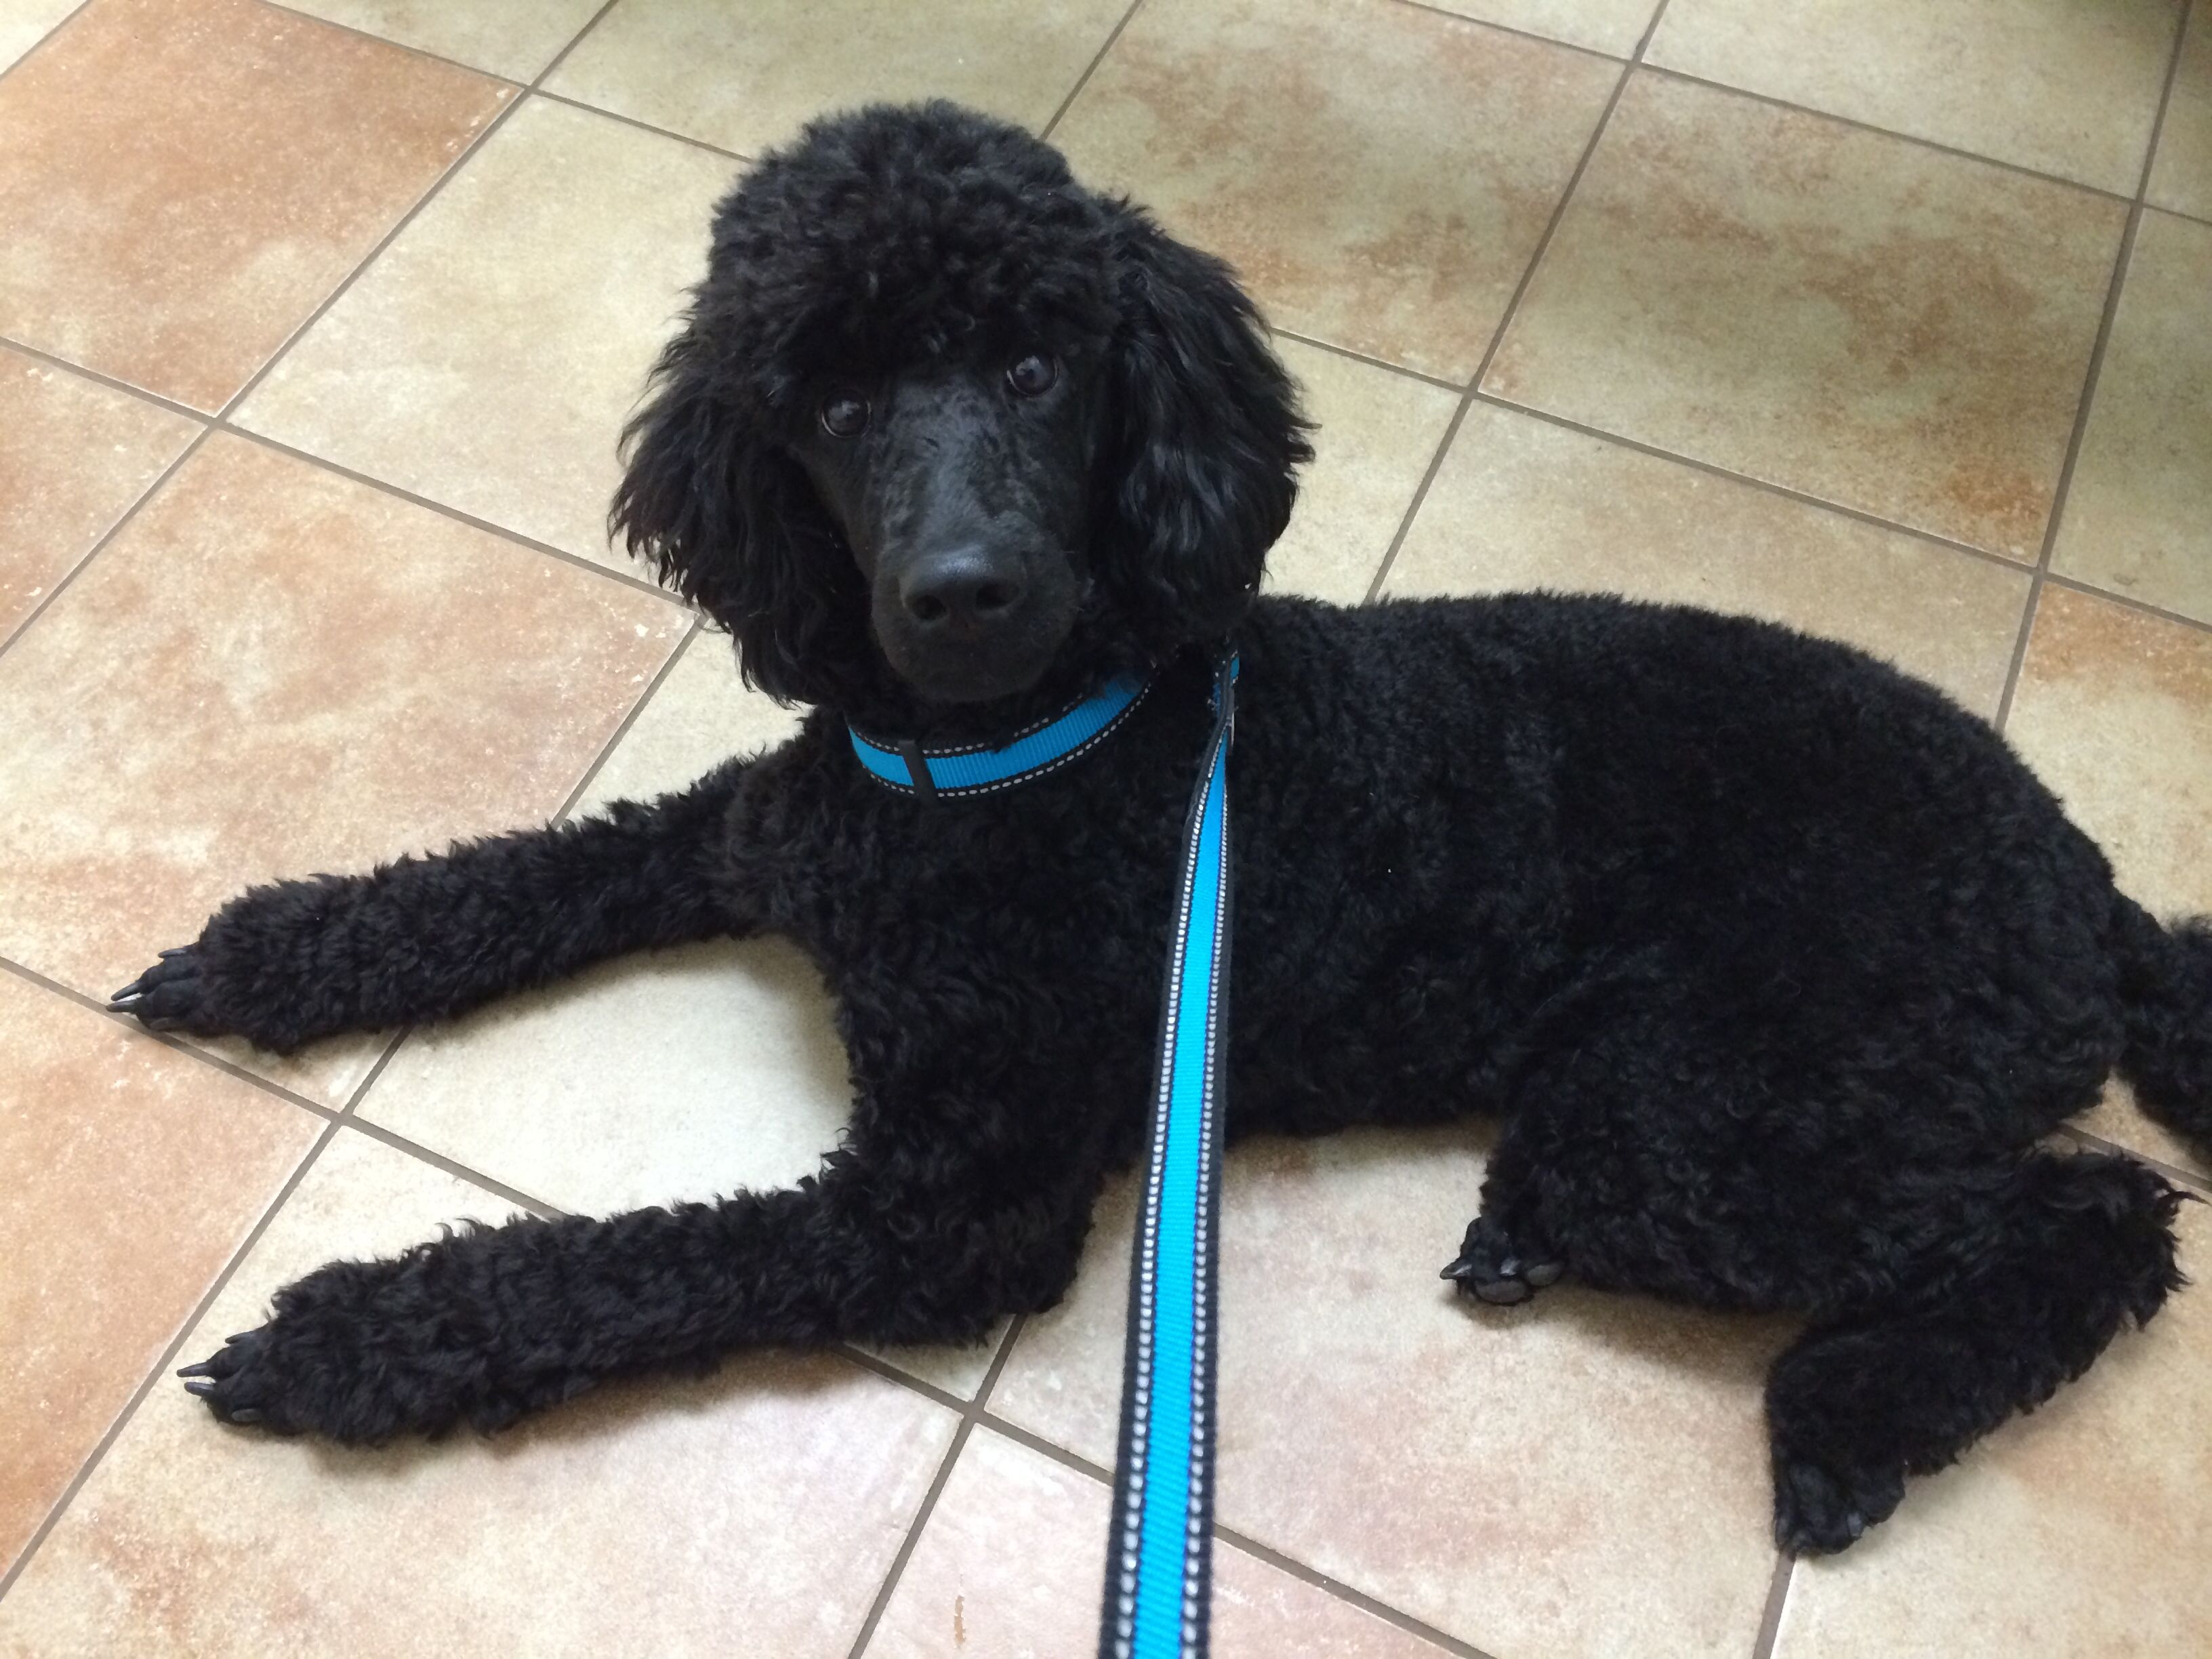 Standard 7 months old My sweet baby dog  | poodle heaven